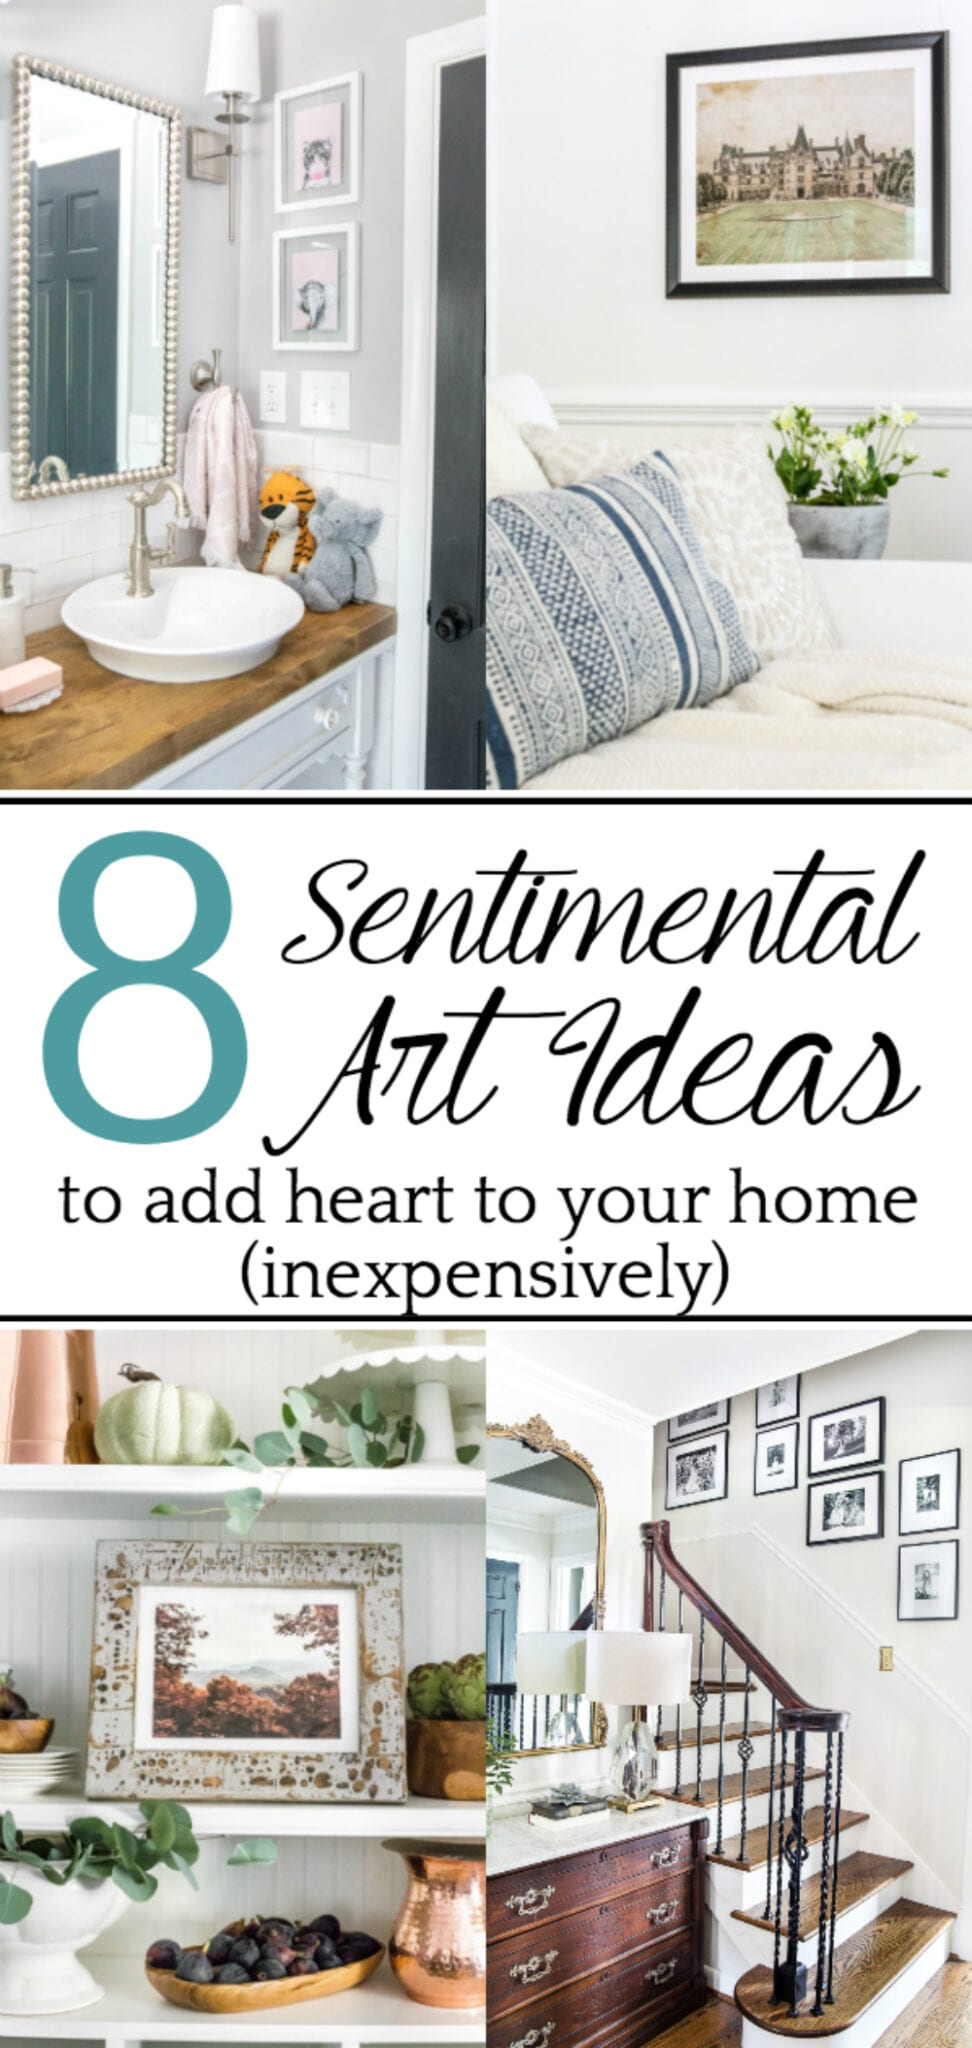 Sentimental Art Ideas | A list of ways to add meaning to your walls inexpensively with family artifacts, heirlooms, and special memories, plus ways to DIY them.